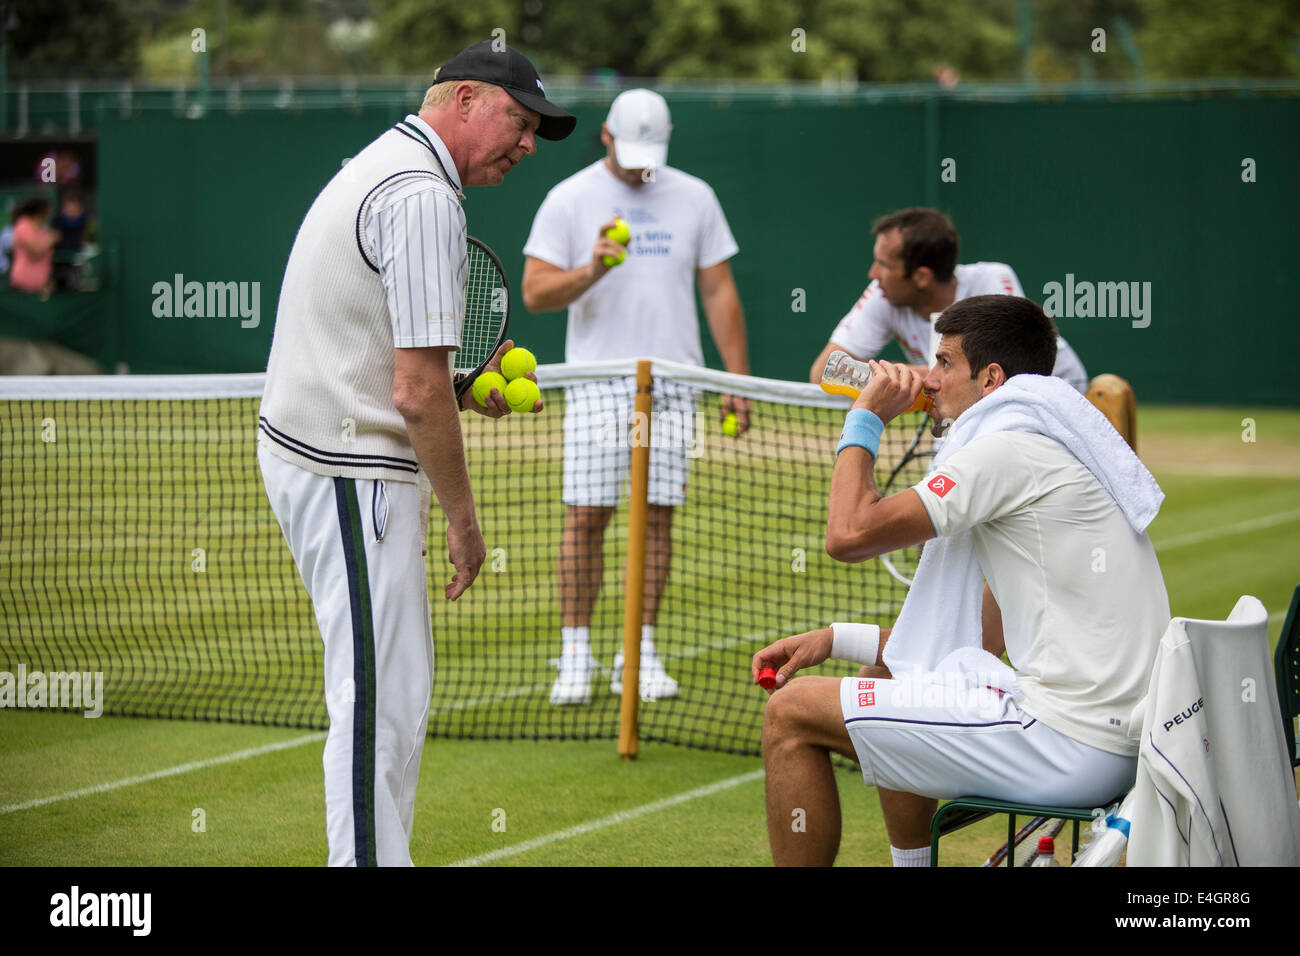 Boris Becker (left) coaches Novak Djokovic (right) as he practices on Court no.4  The Championships Wimbledon 2014 - Stock Image